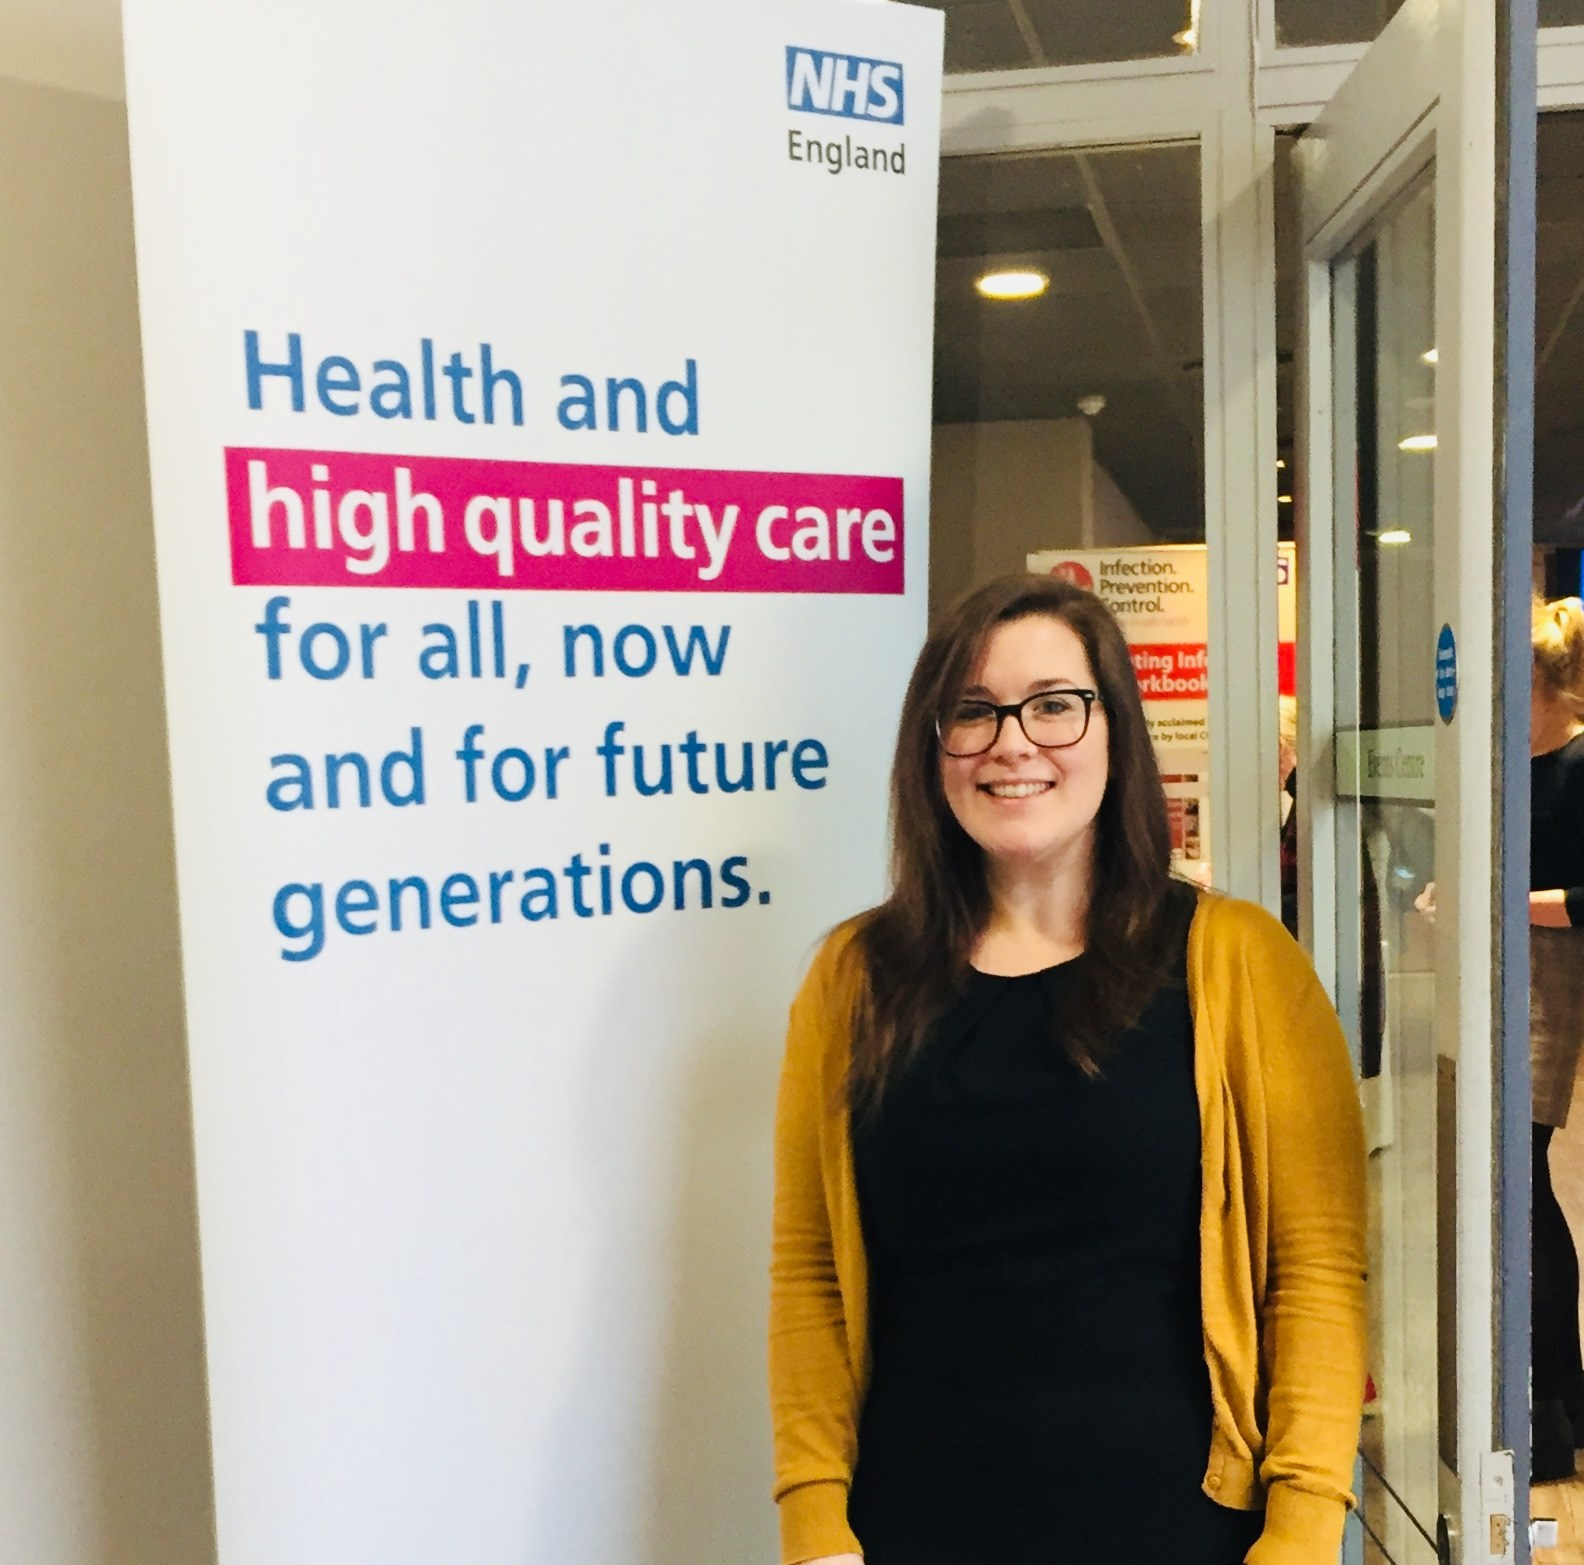 Katy Peters at NHS conference Feb 2018.jpg